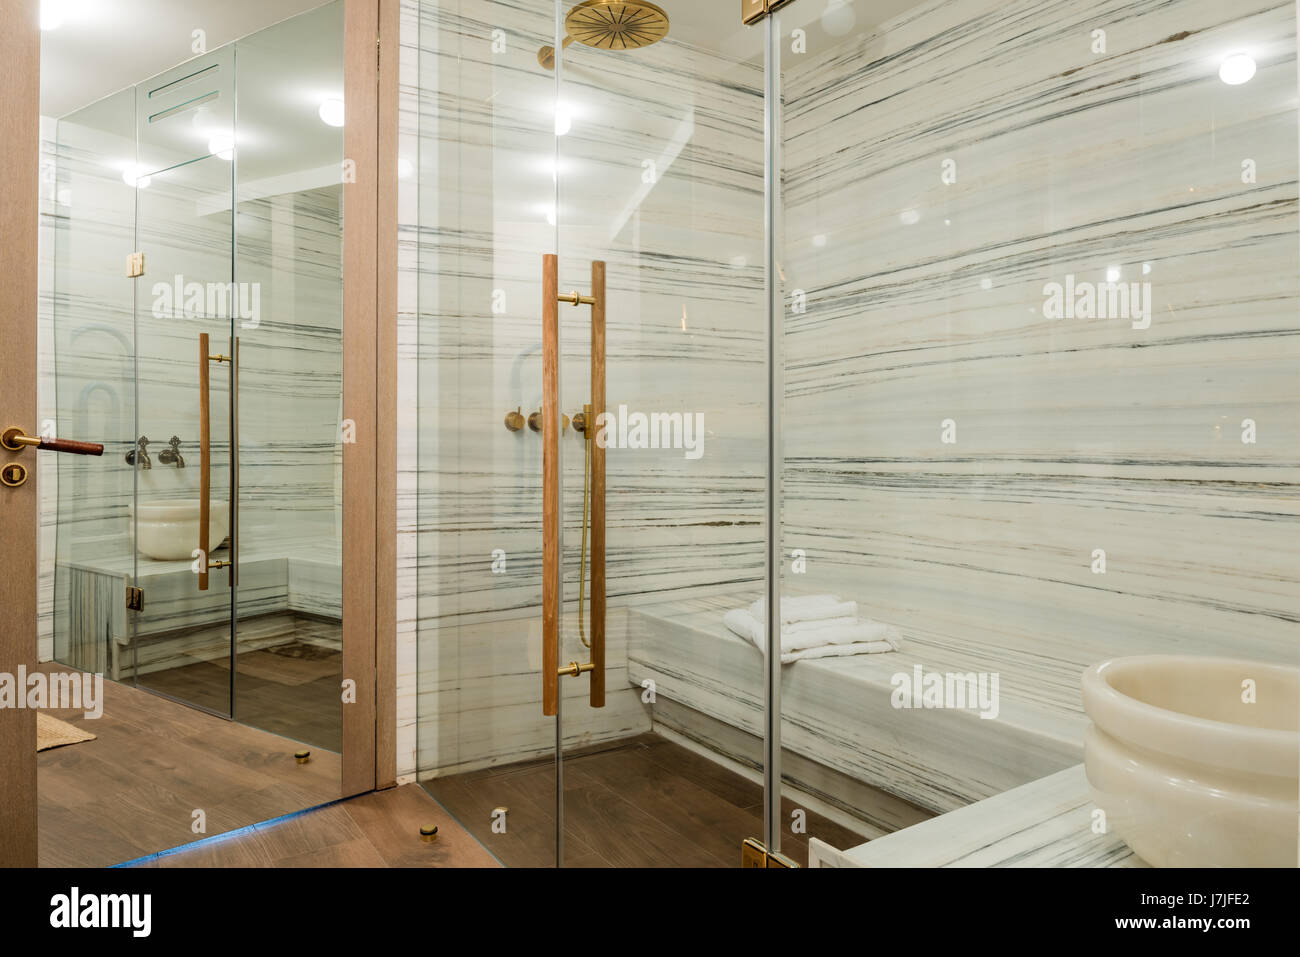 Marble lined spa with glass screen - Stock Image